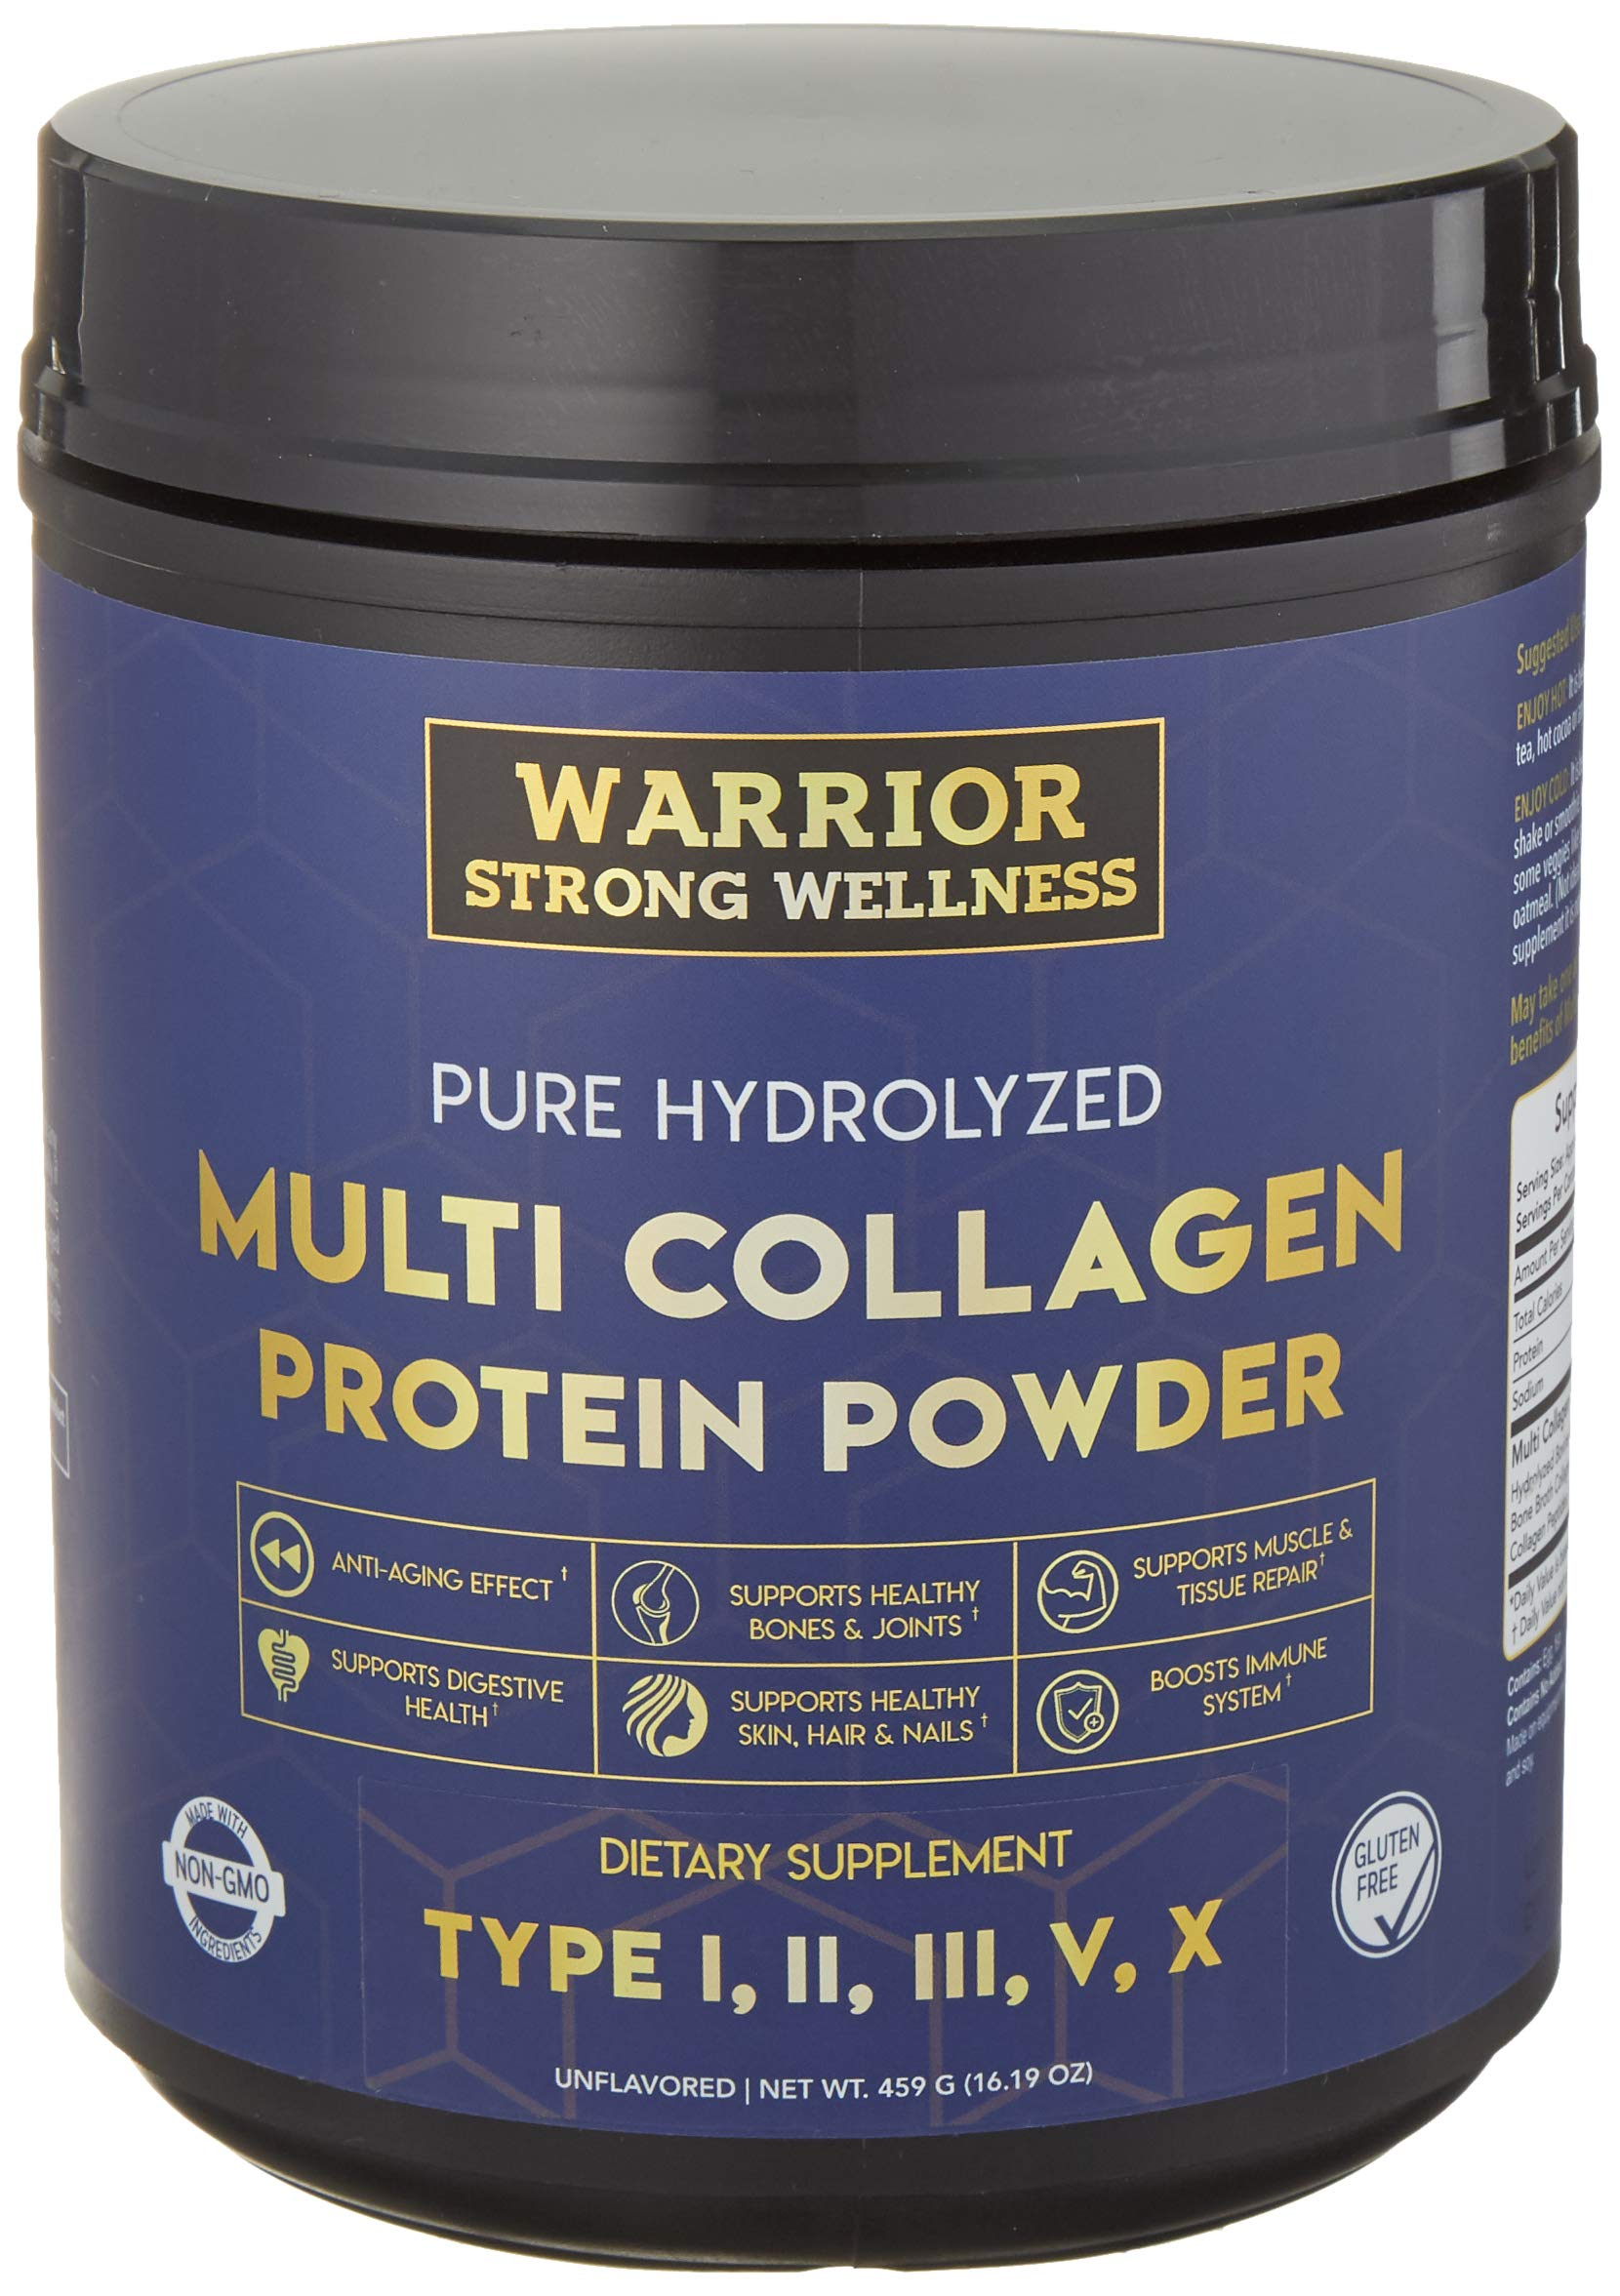 Premium Hydrolyzed Multi Collagen Protein Powder by Warrior Strong Wellness: High Quality Blend of Grass Fed Beef, Cage Free Chicken, Wild Fish, Eggshell, Keto Friendly; Providing Type I,II,III,V by Warrior Strong Wellness